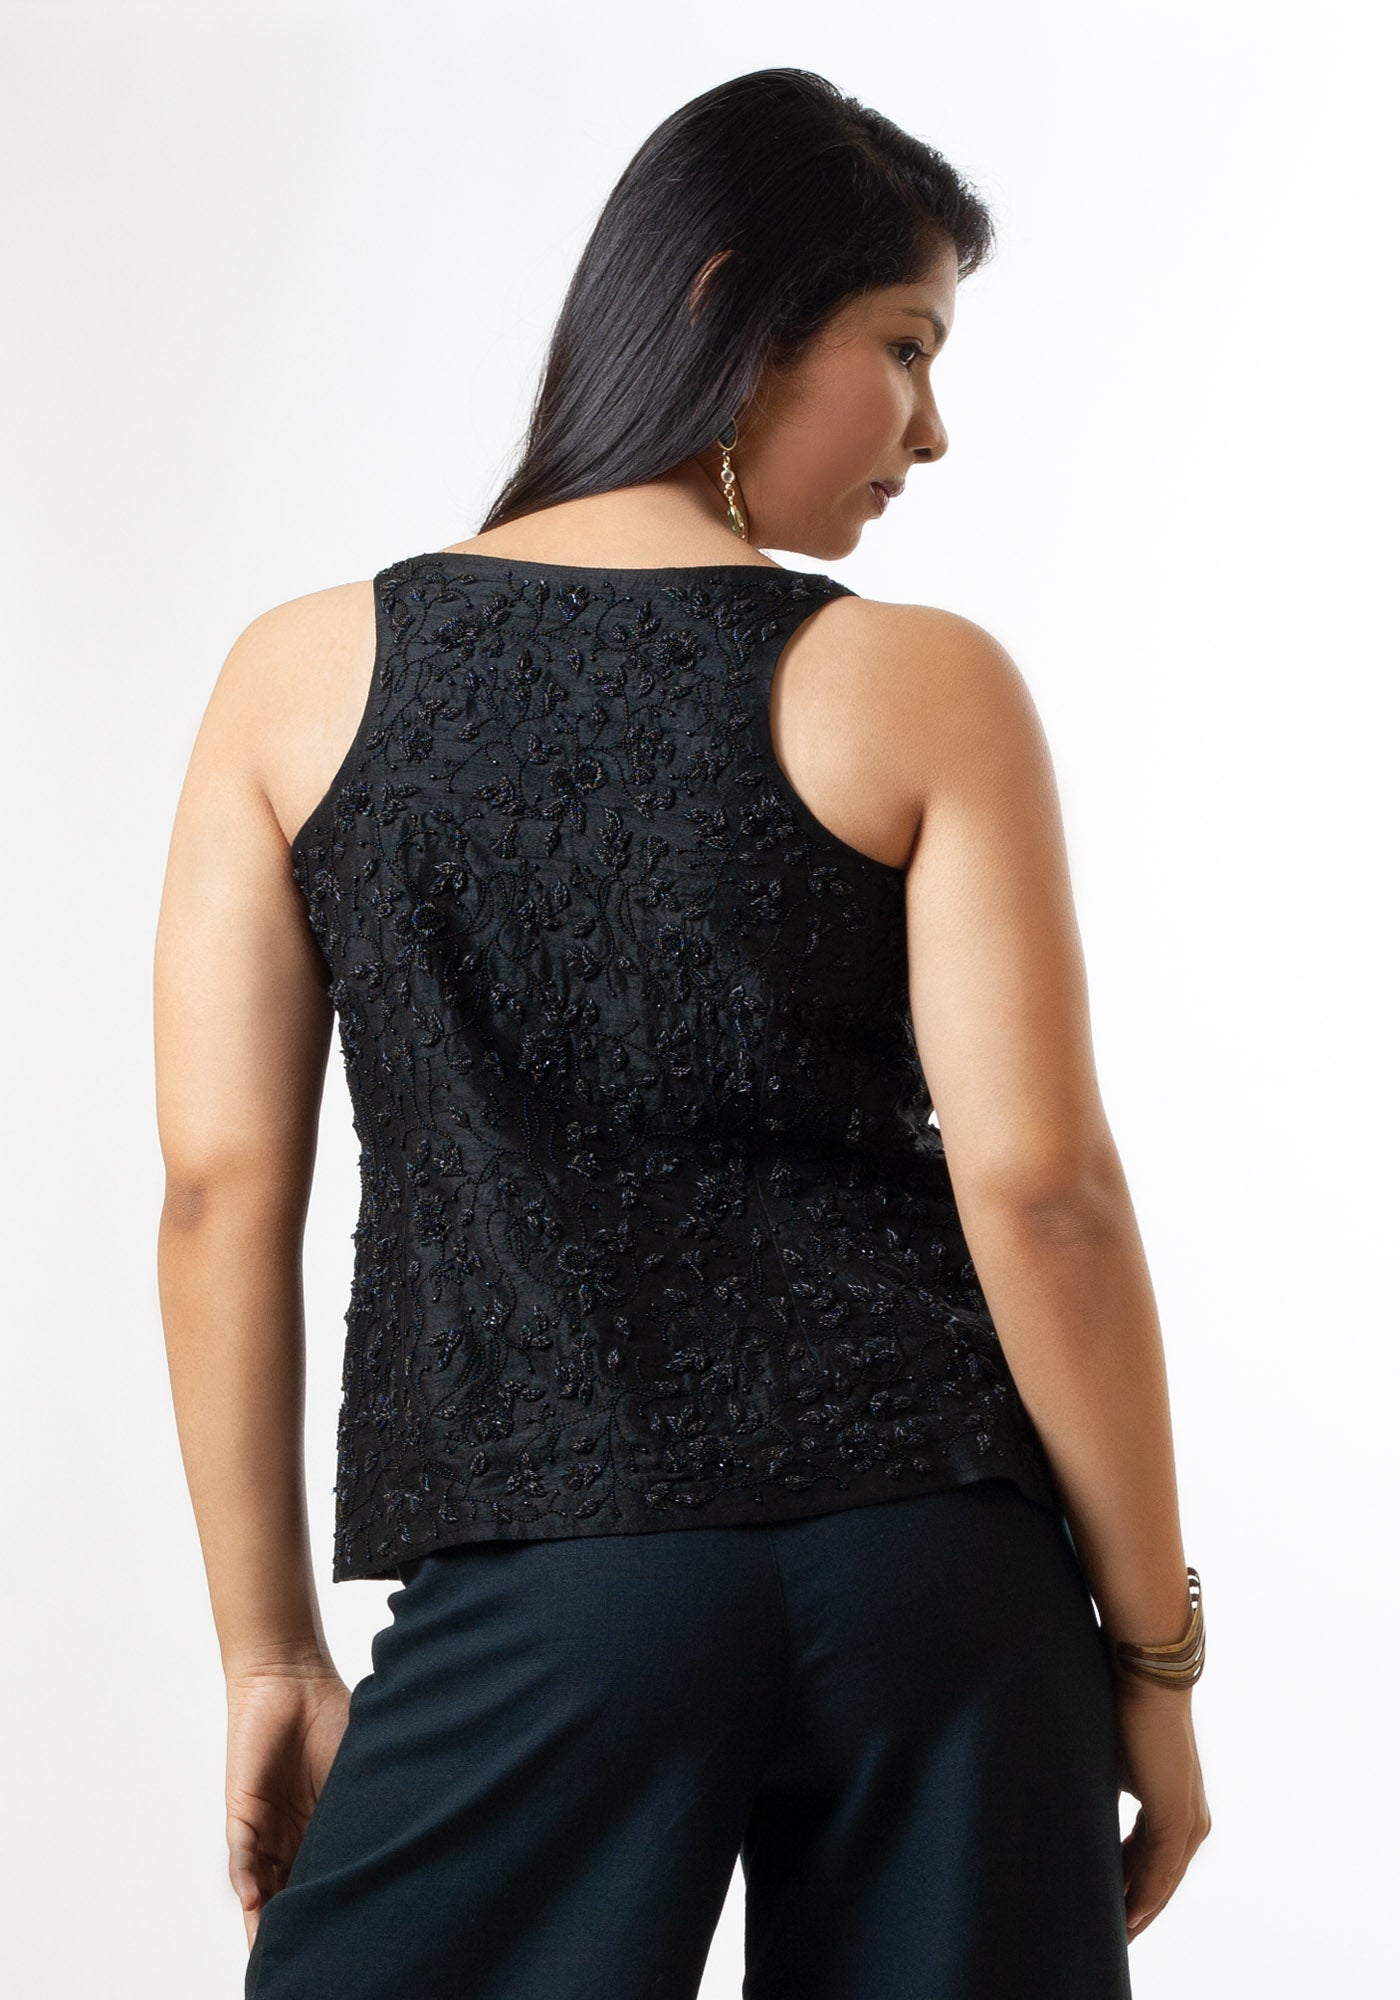 Sleeveless Hand Embroidered Black Beaded Top in Black Silk - MINC ecofashion